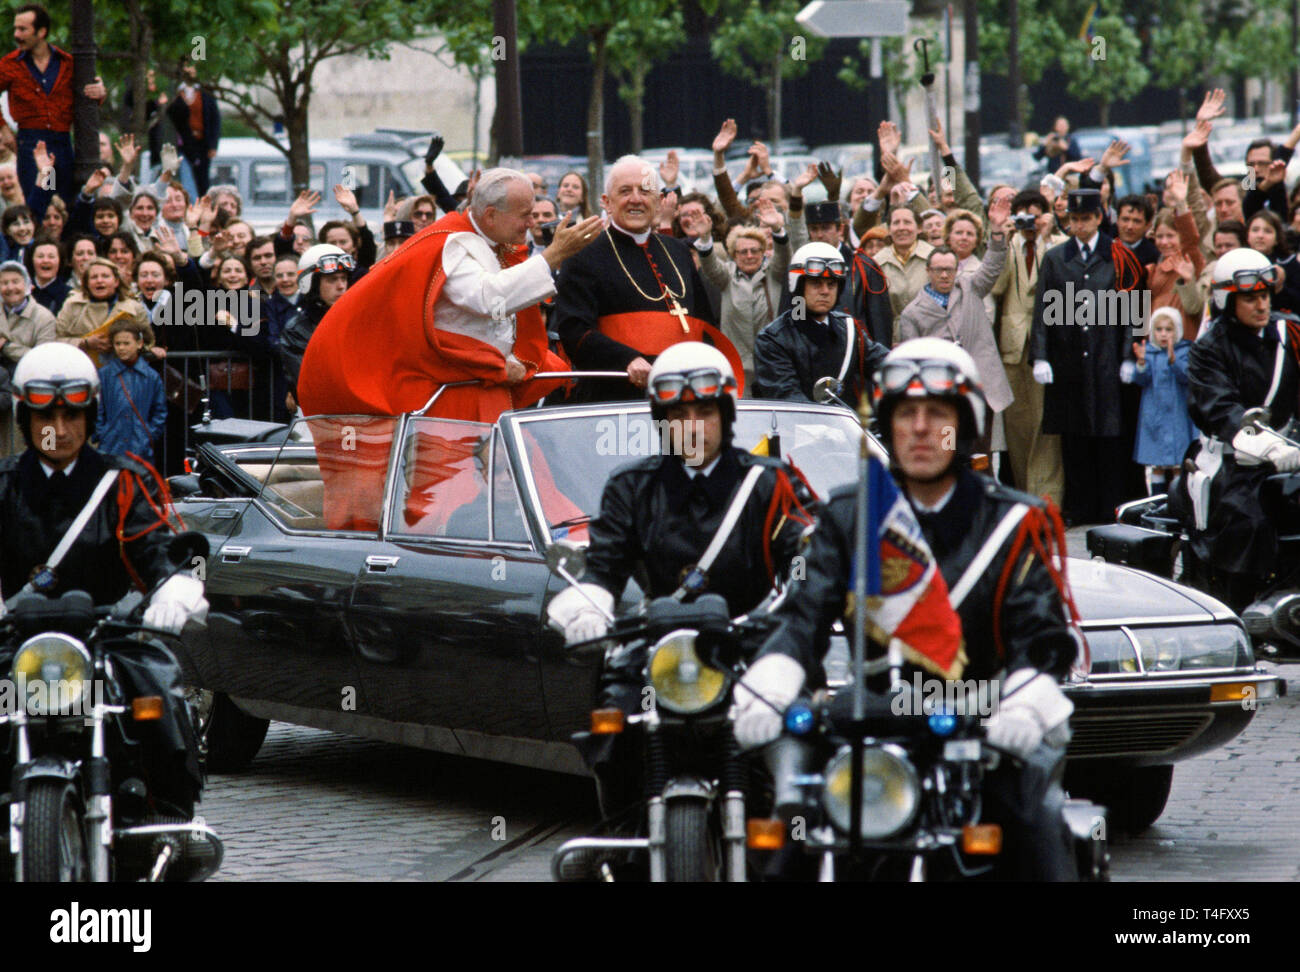 Pope John Paul II during his historic visit to Paris in 1980 travels in motorcade with light minimal security of open top car with police escort motorcycle outriders Stock Photo